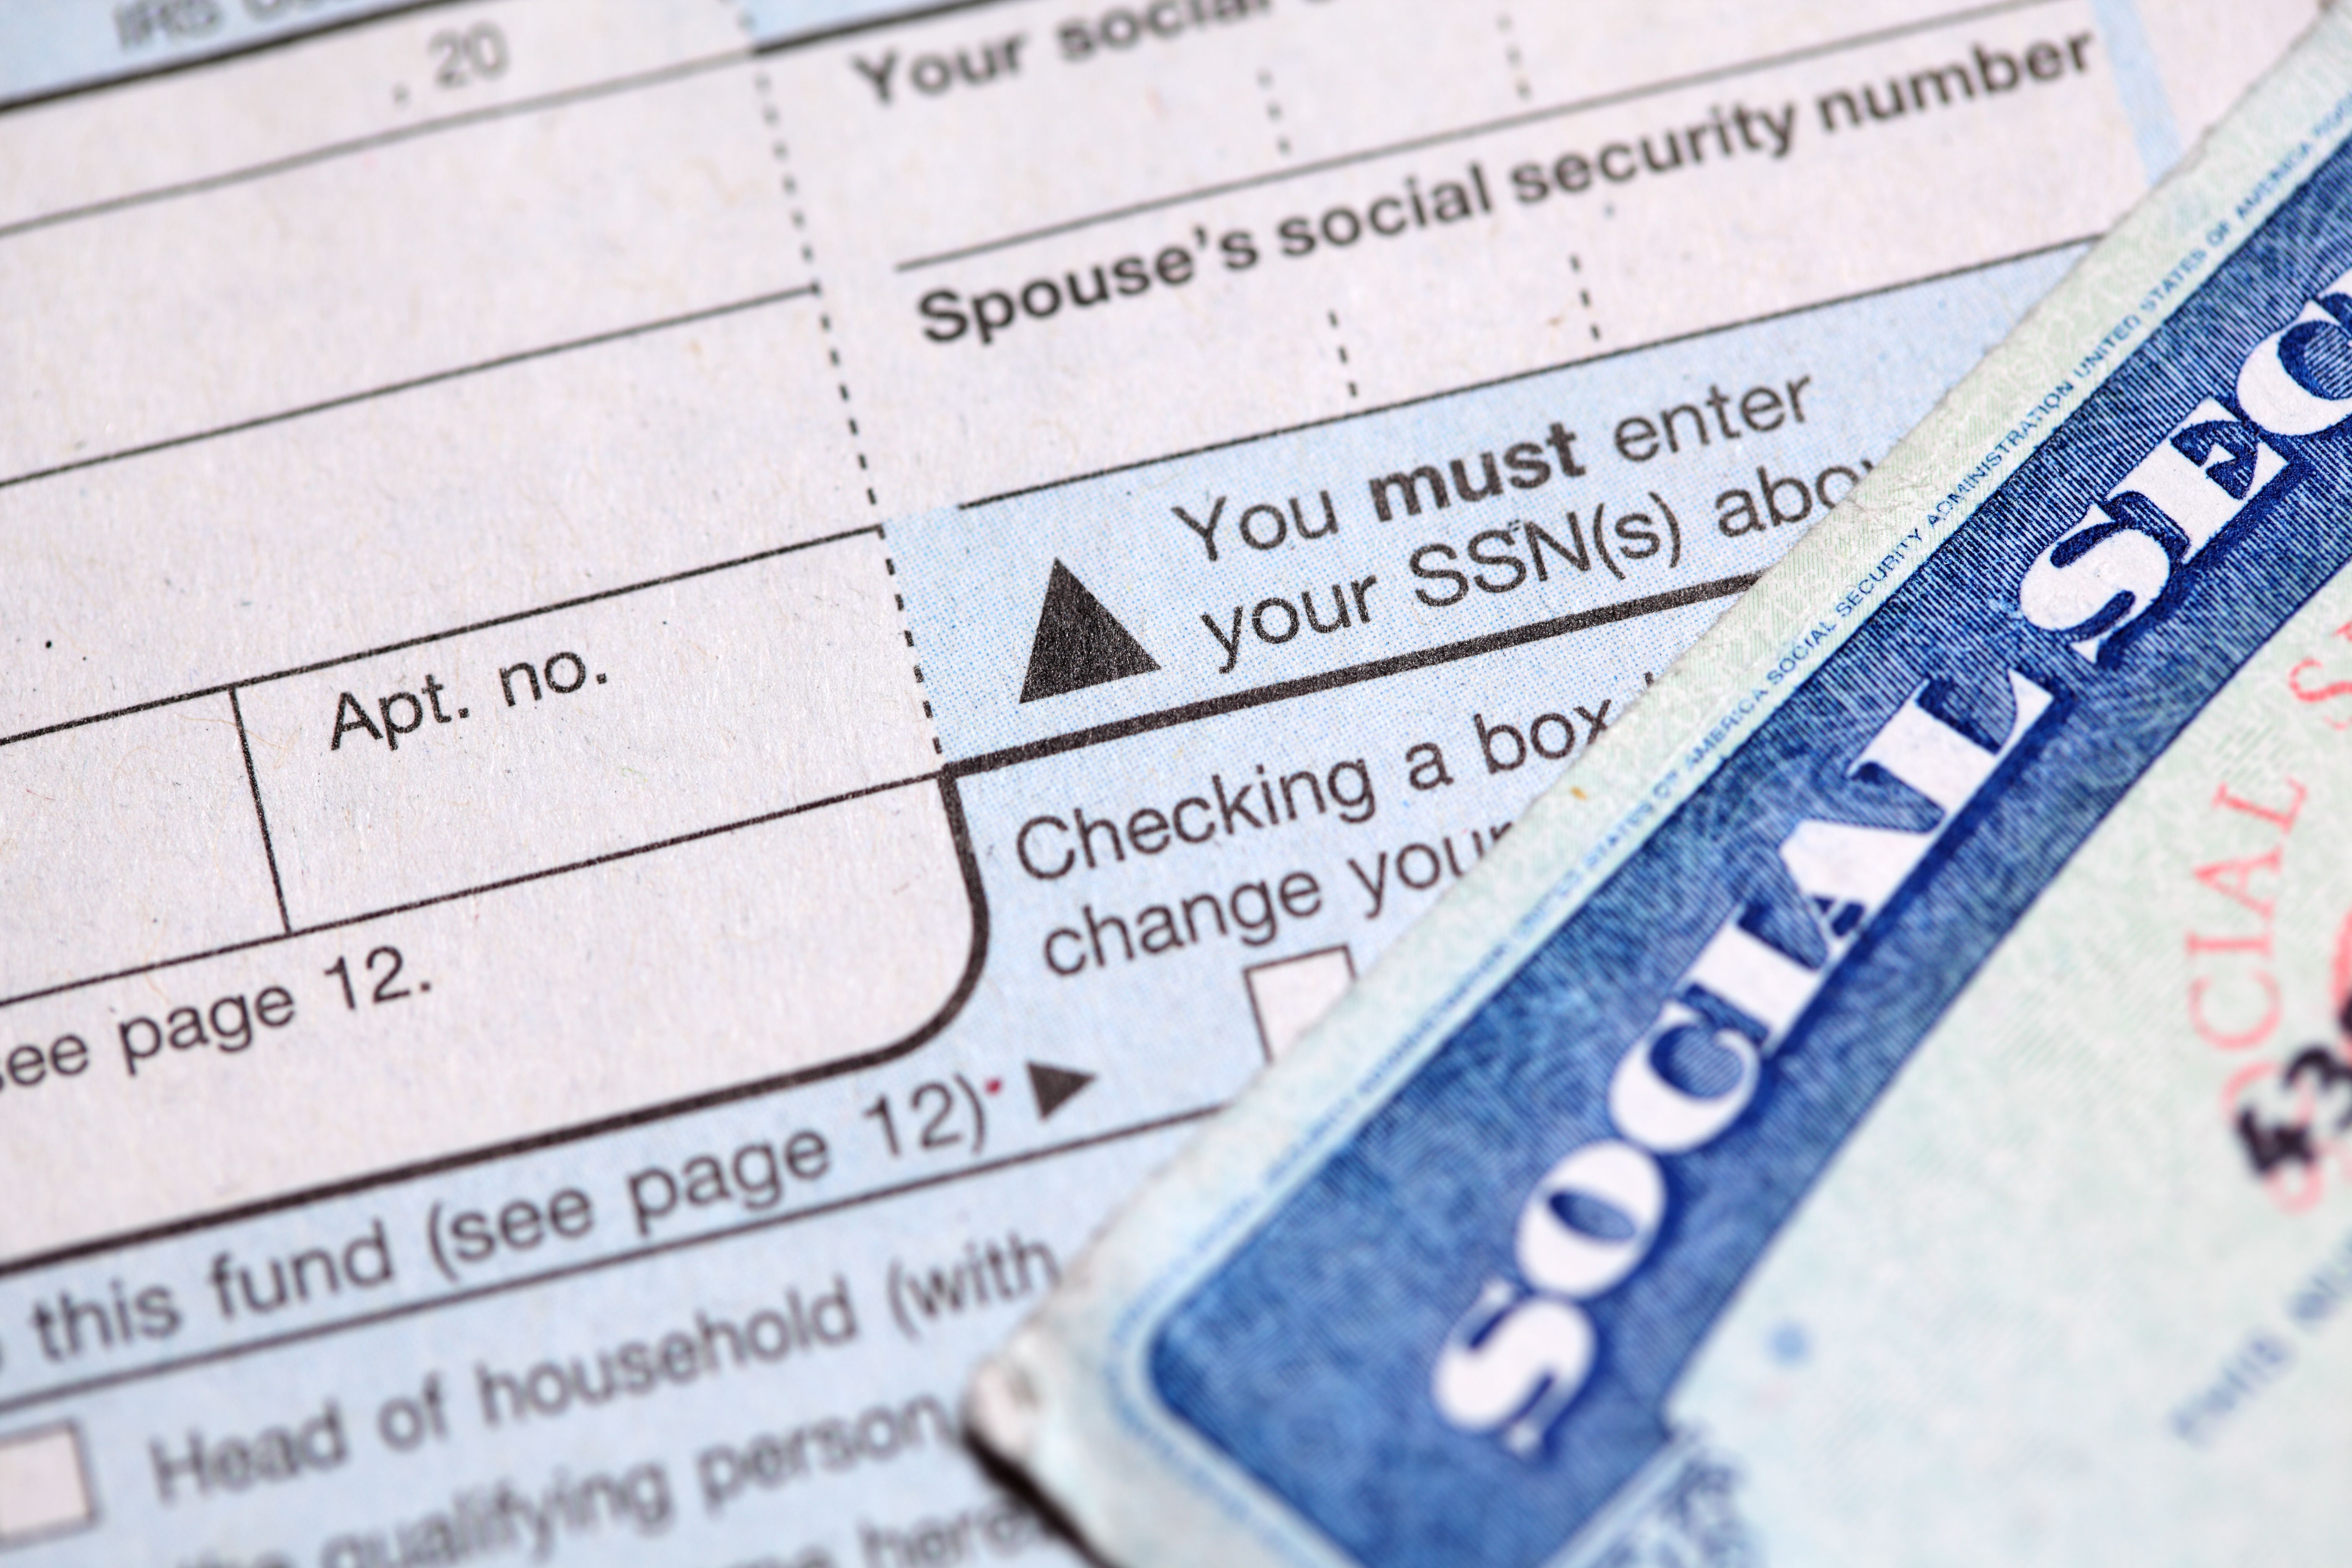 is supplemental security income taxable income